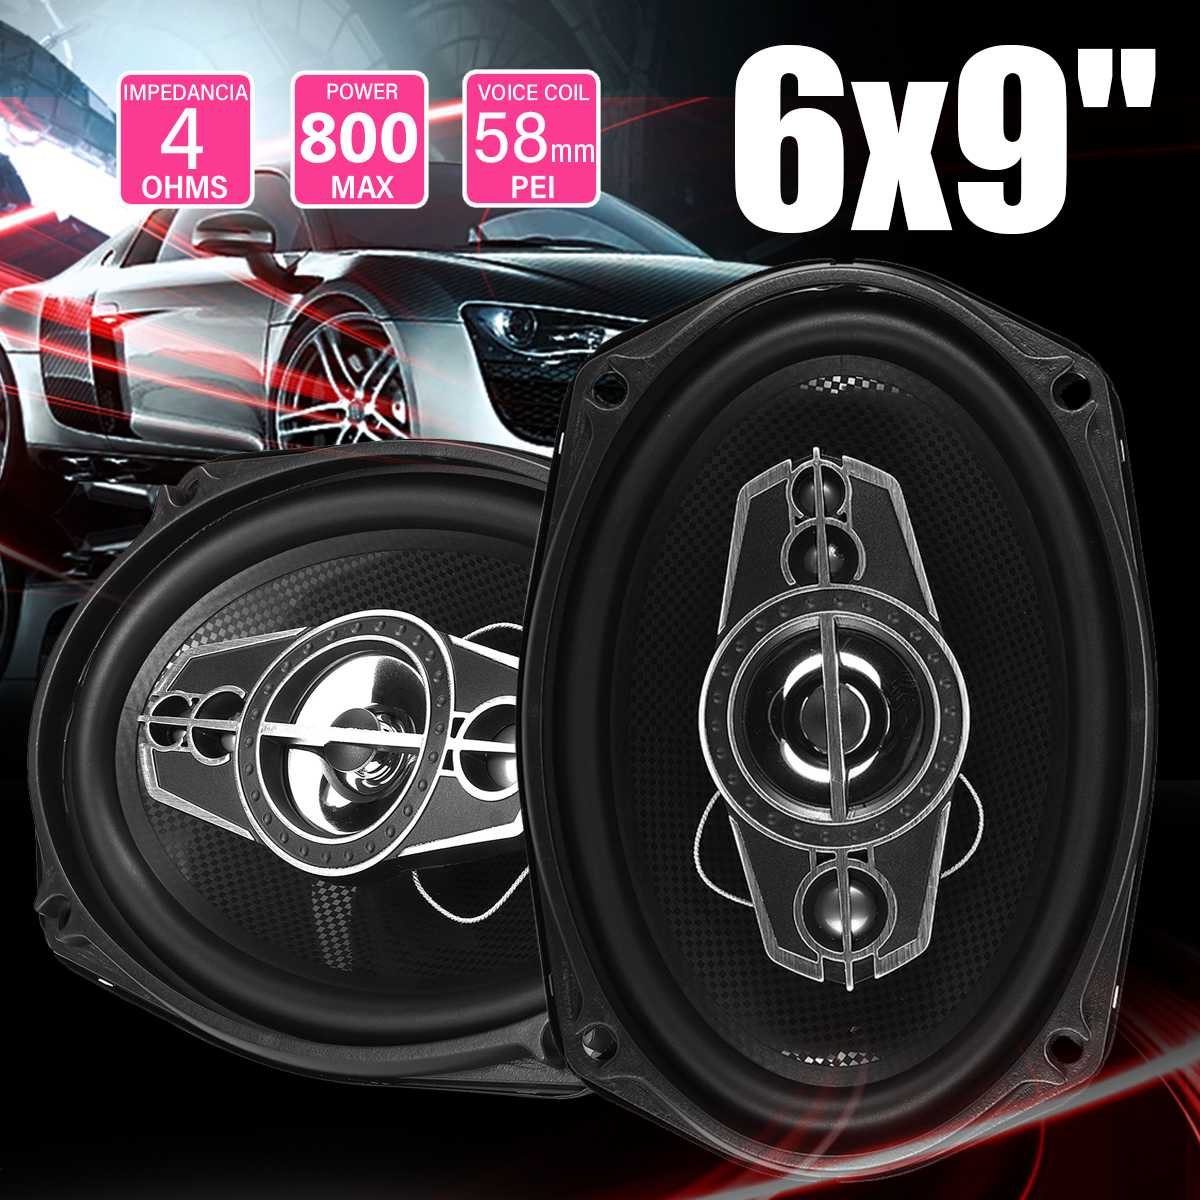 2pcs 800W 6x9 inch Car Speaker and Subwoofer HIFI Coaxial Speaker Car Bass Tweeter Audio Loudspeaker Stereo for Universal Cars